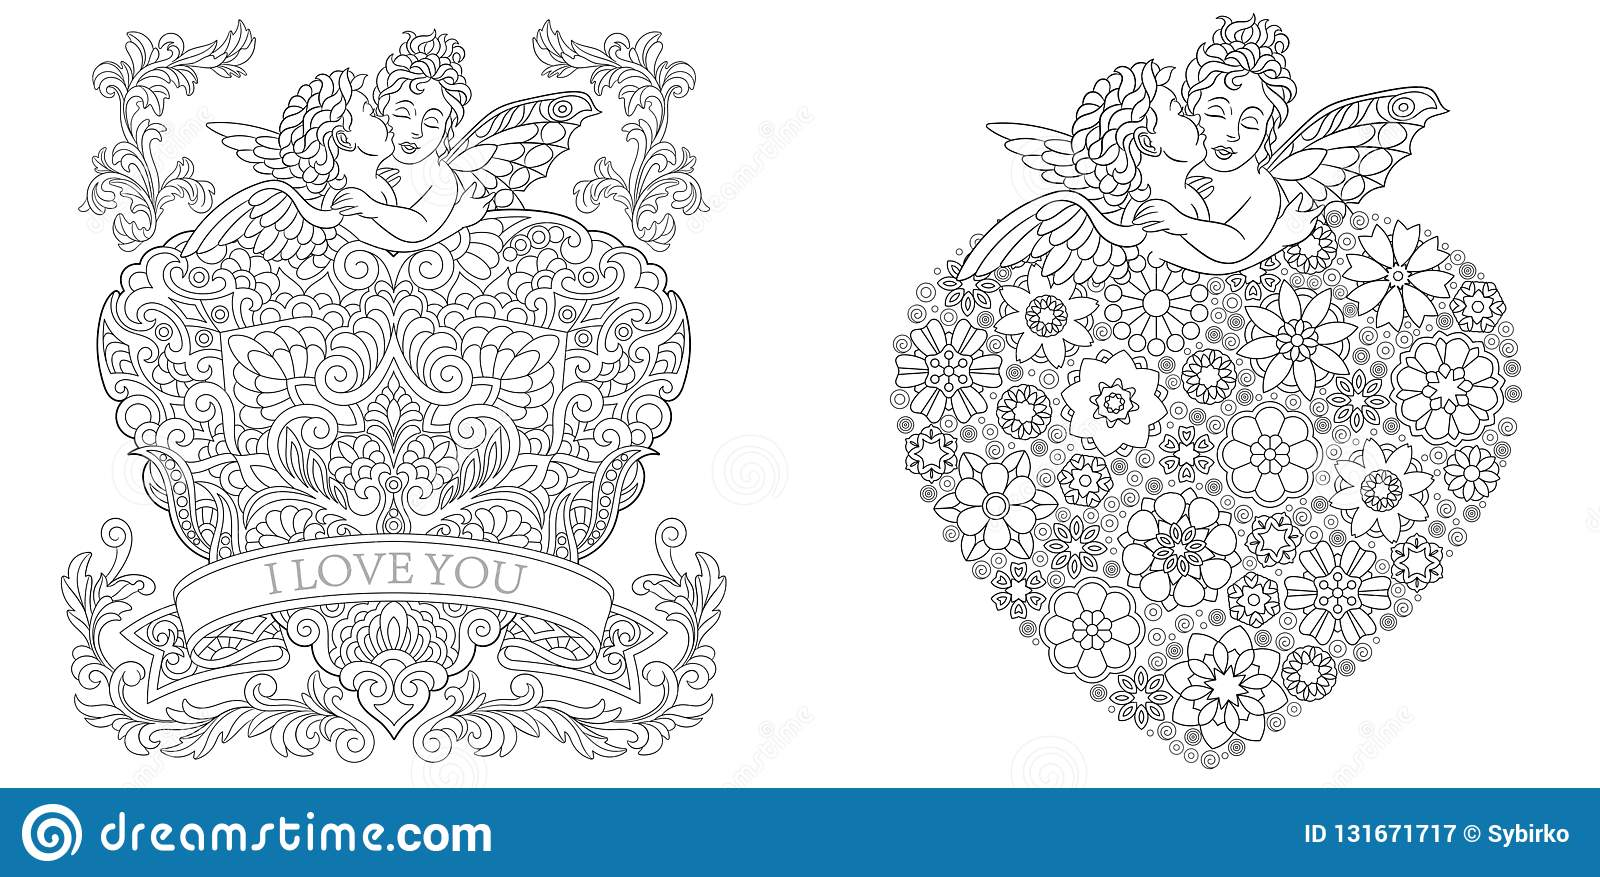 Coloring Pages. Coloring Book For Adults. Colouring Pictures ...